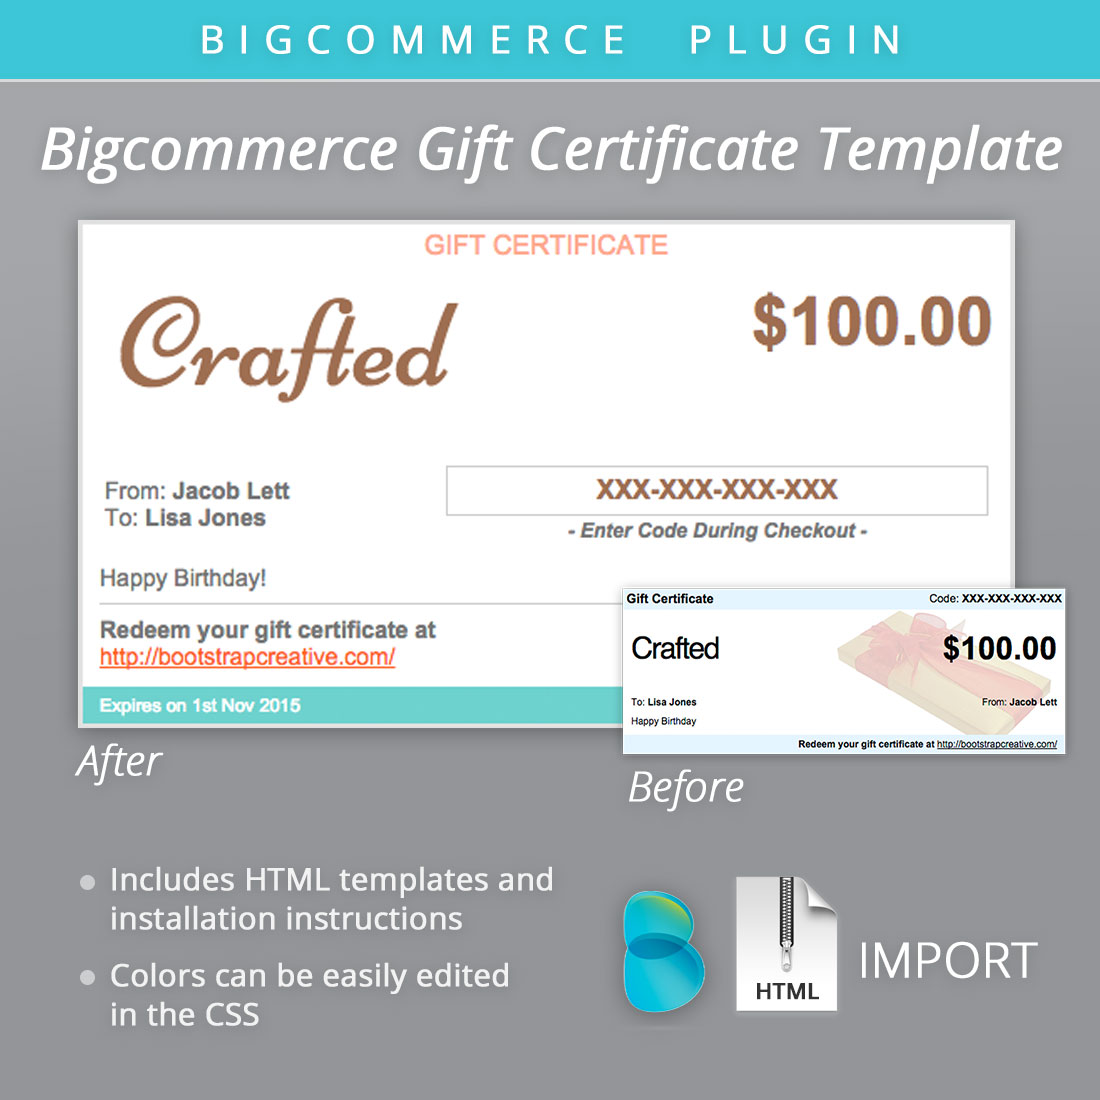 Bigcommerce Gift Certificate Email   Email Templates on Creative W0a1mEgd